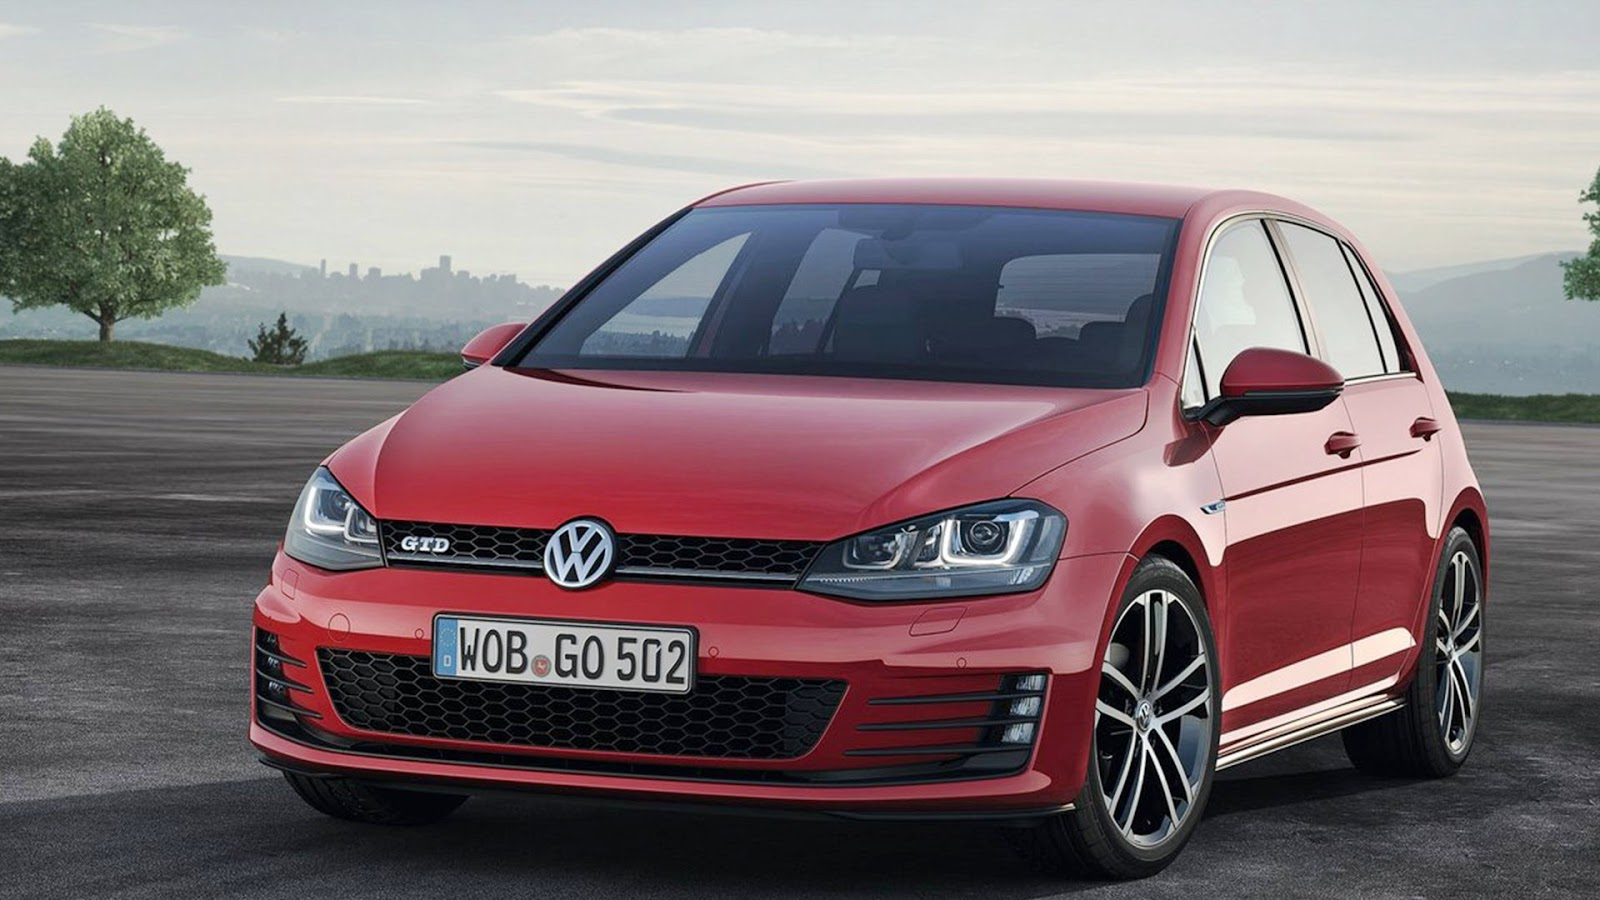 2014 volkswagen golf gtd review automotive cars. Black Bedroom Furniture Sets. Home Design Ideas